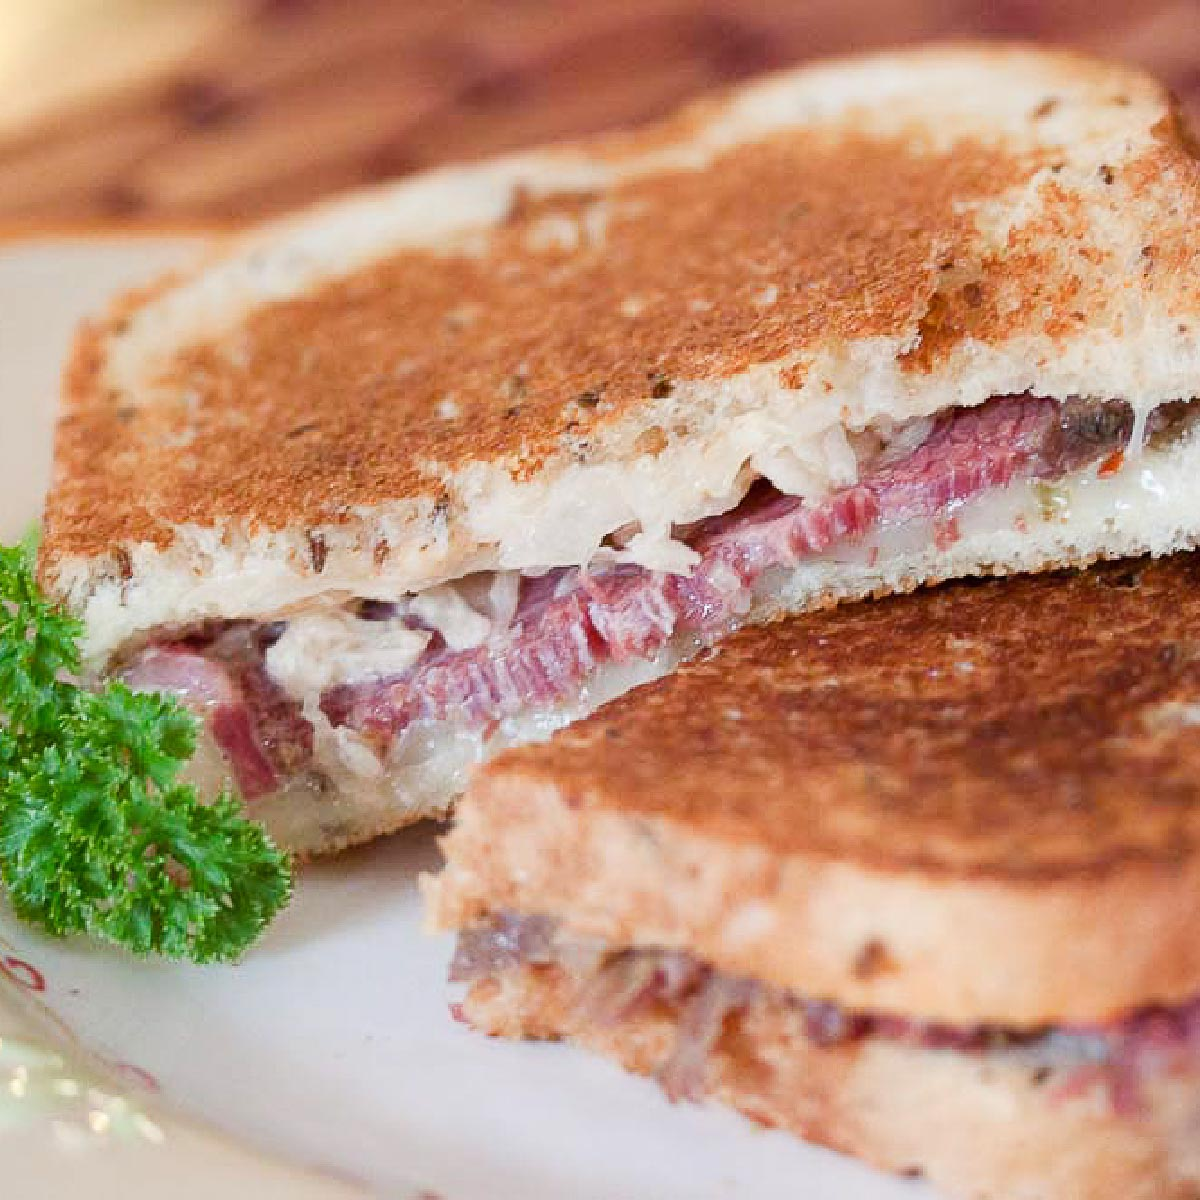 Two Reuben sandwiches on a white plate.